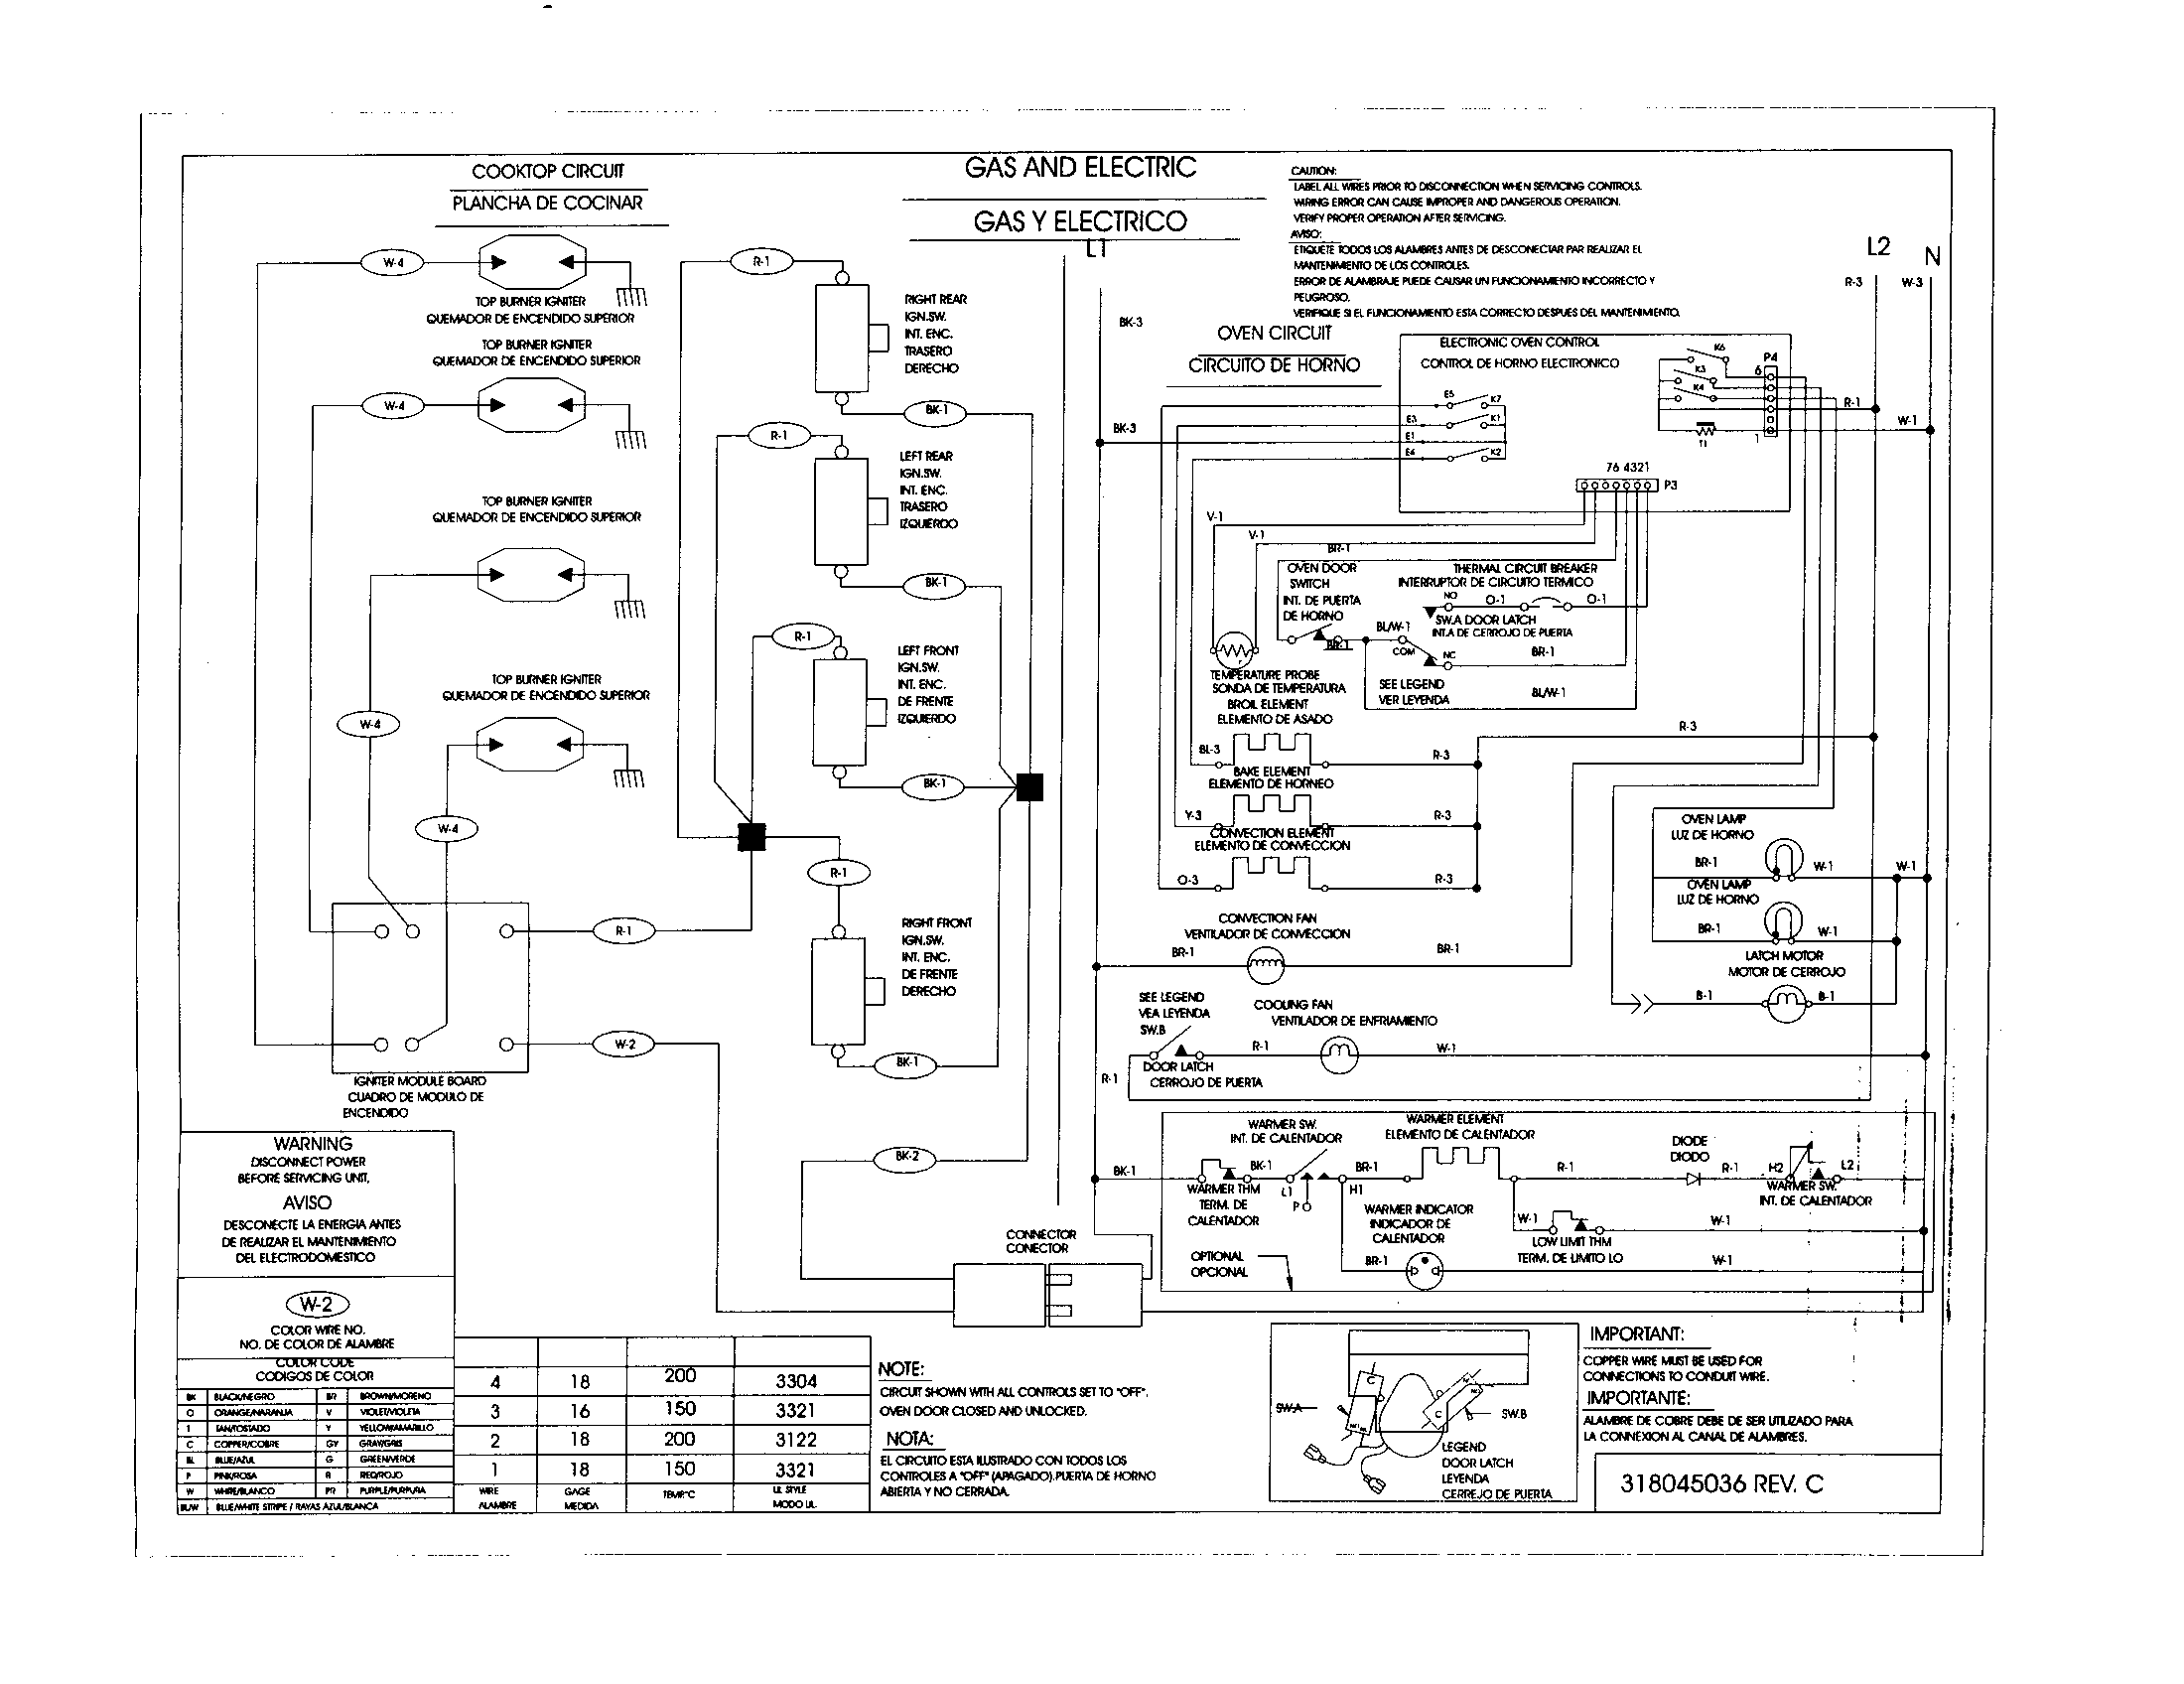 wiring diagram parts wiring diagram for kenmore refrigerator kenmore refrigerator wiring schematic at crackthecode.co